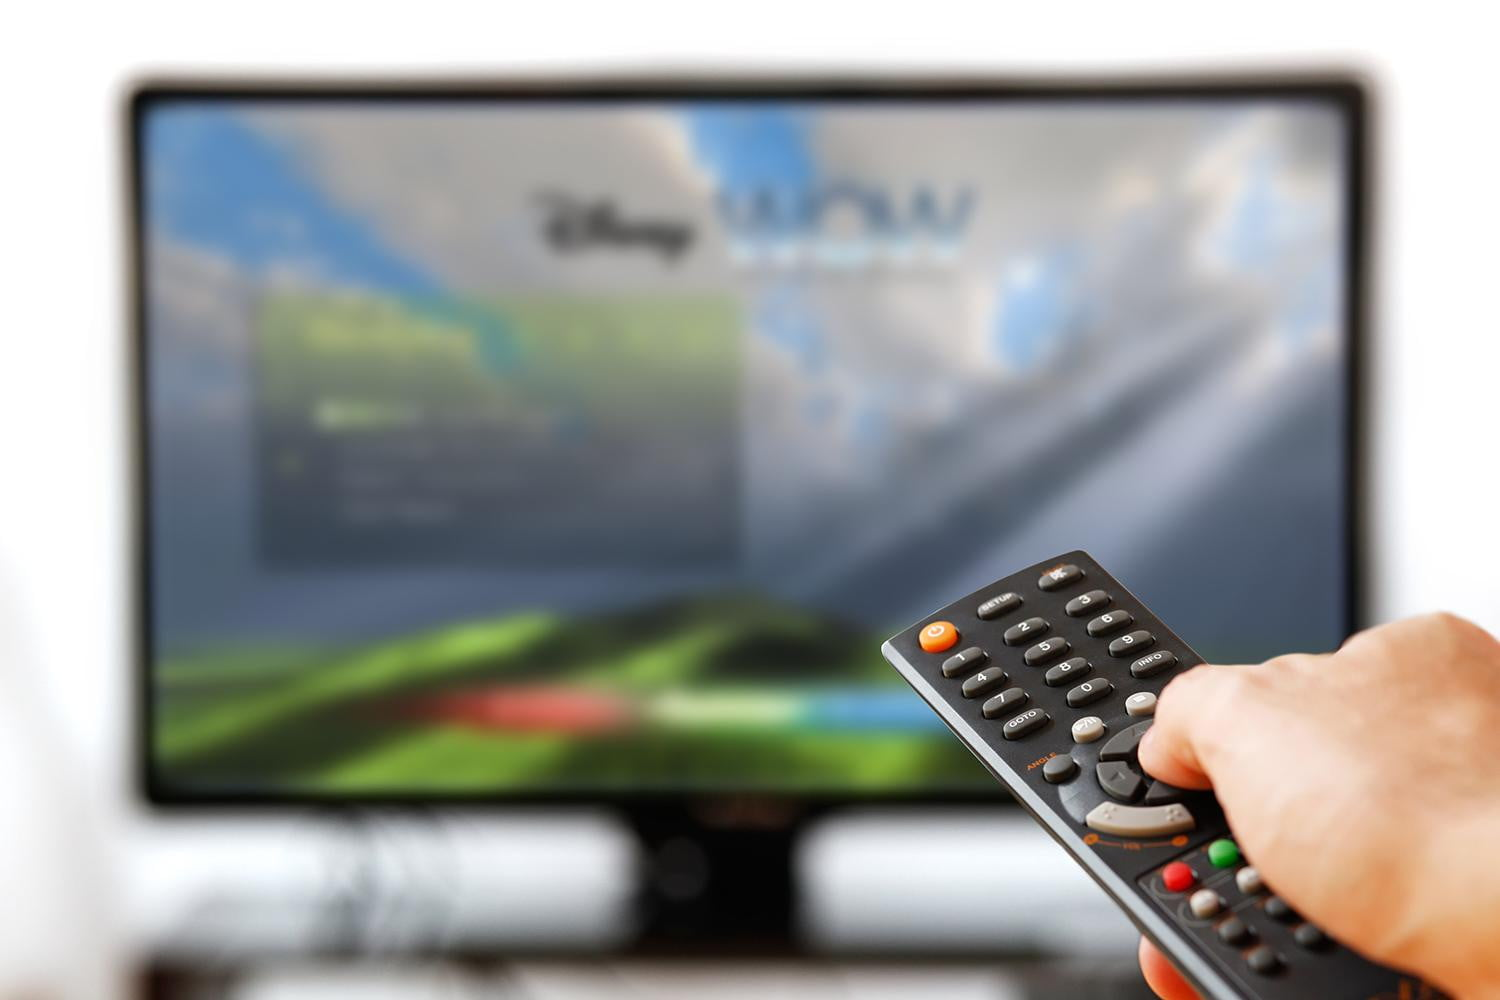 tv calibration 101 how to tune up your new calibrate